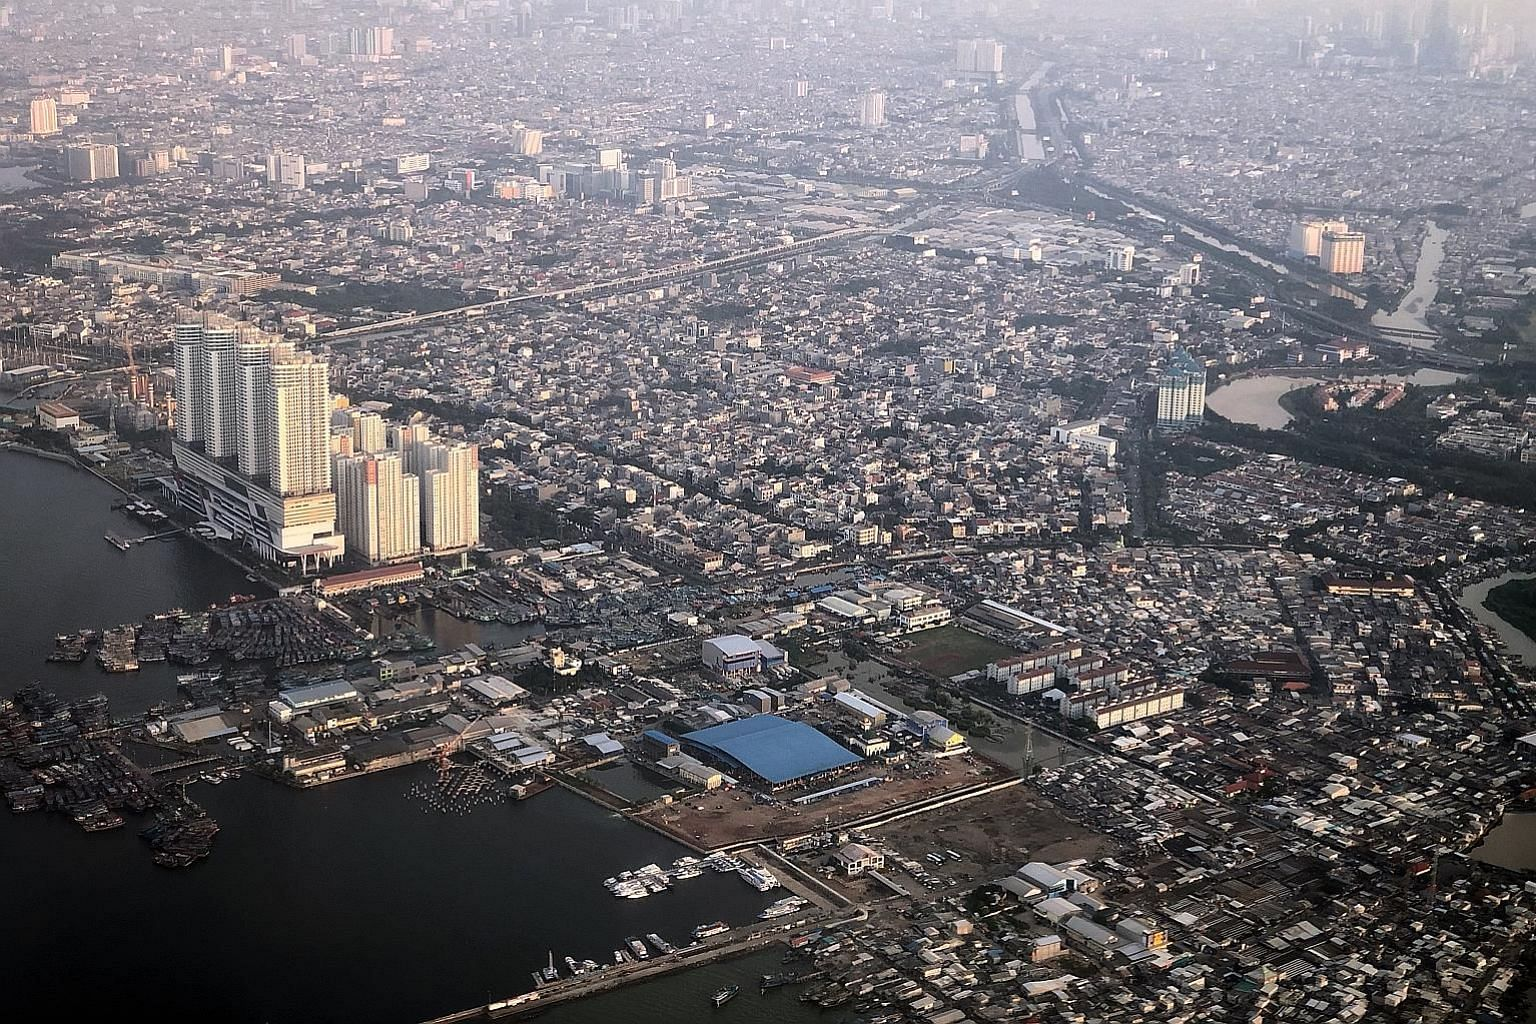 The Indonesian capital, Jakarta, is home to more than 10 million people, but around three times that many people live in the surrounding towns, adding to the severe congestion. The low-lying city is prone to flooding and is sinking due to over-extrac